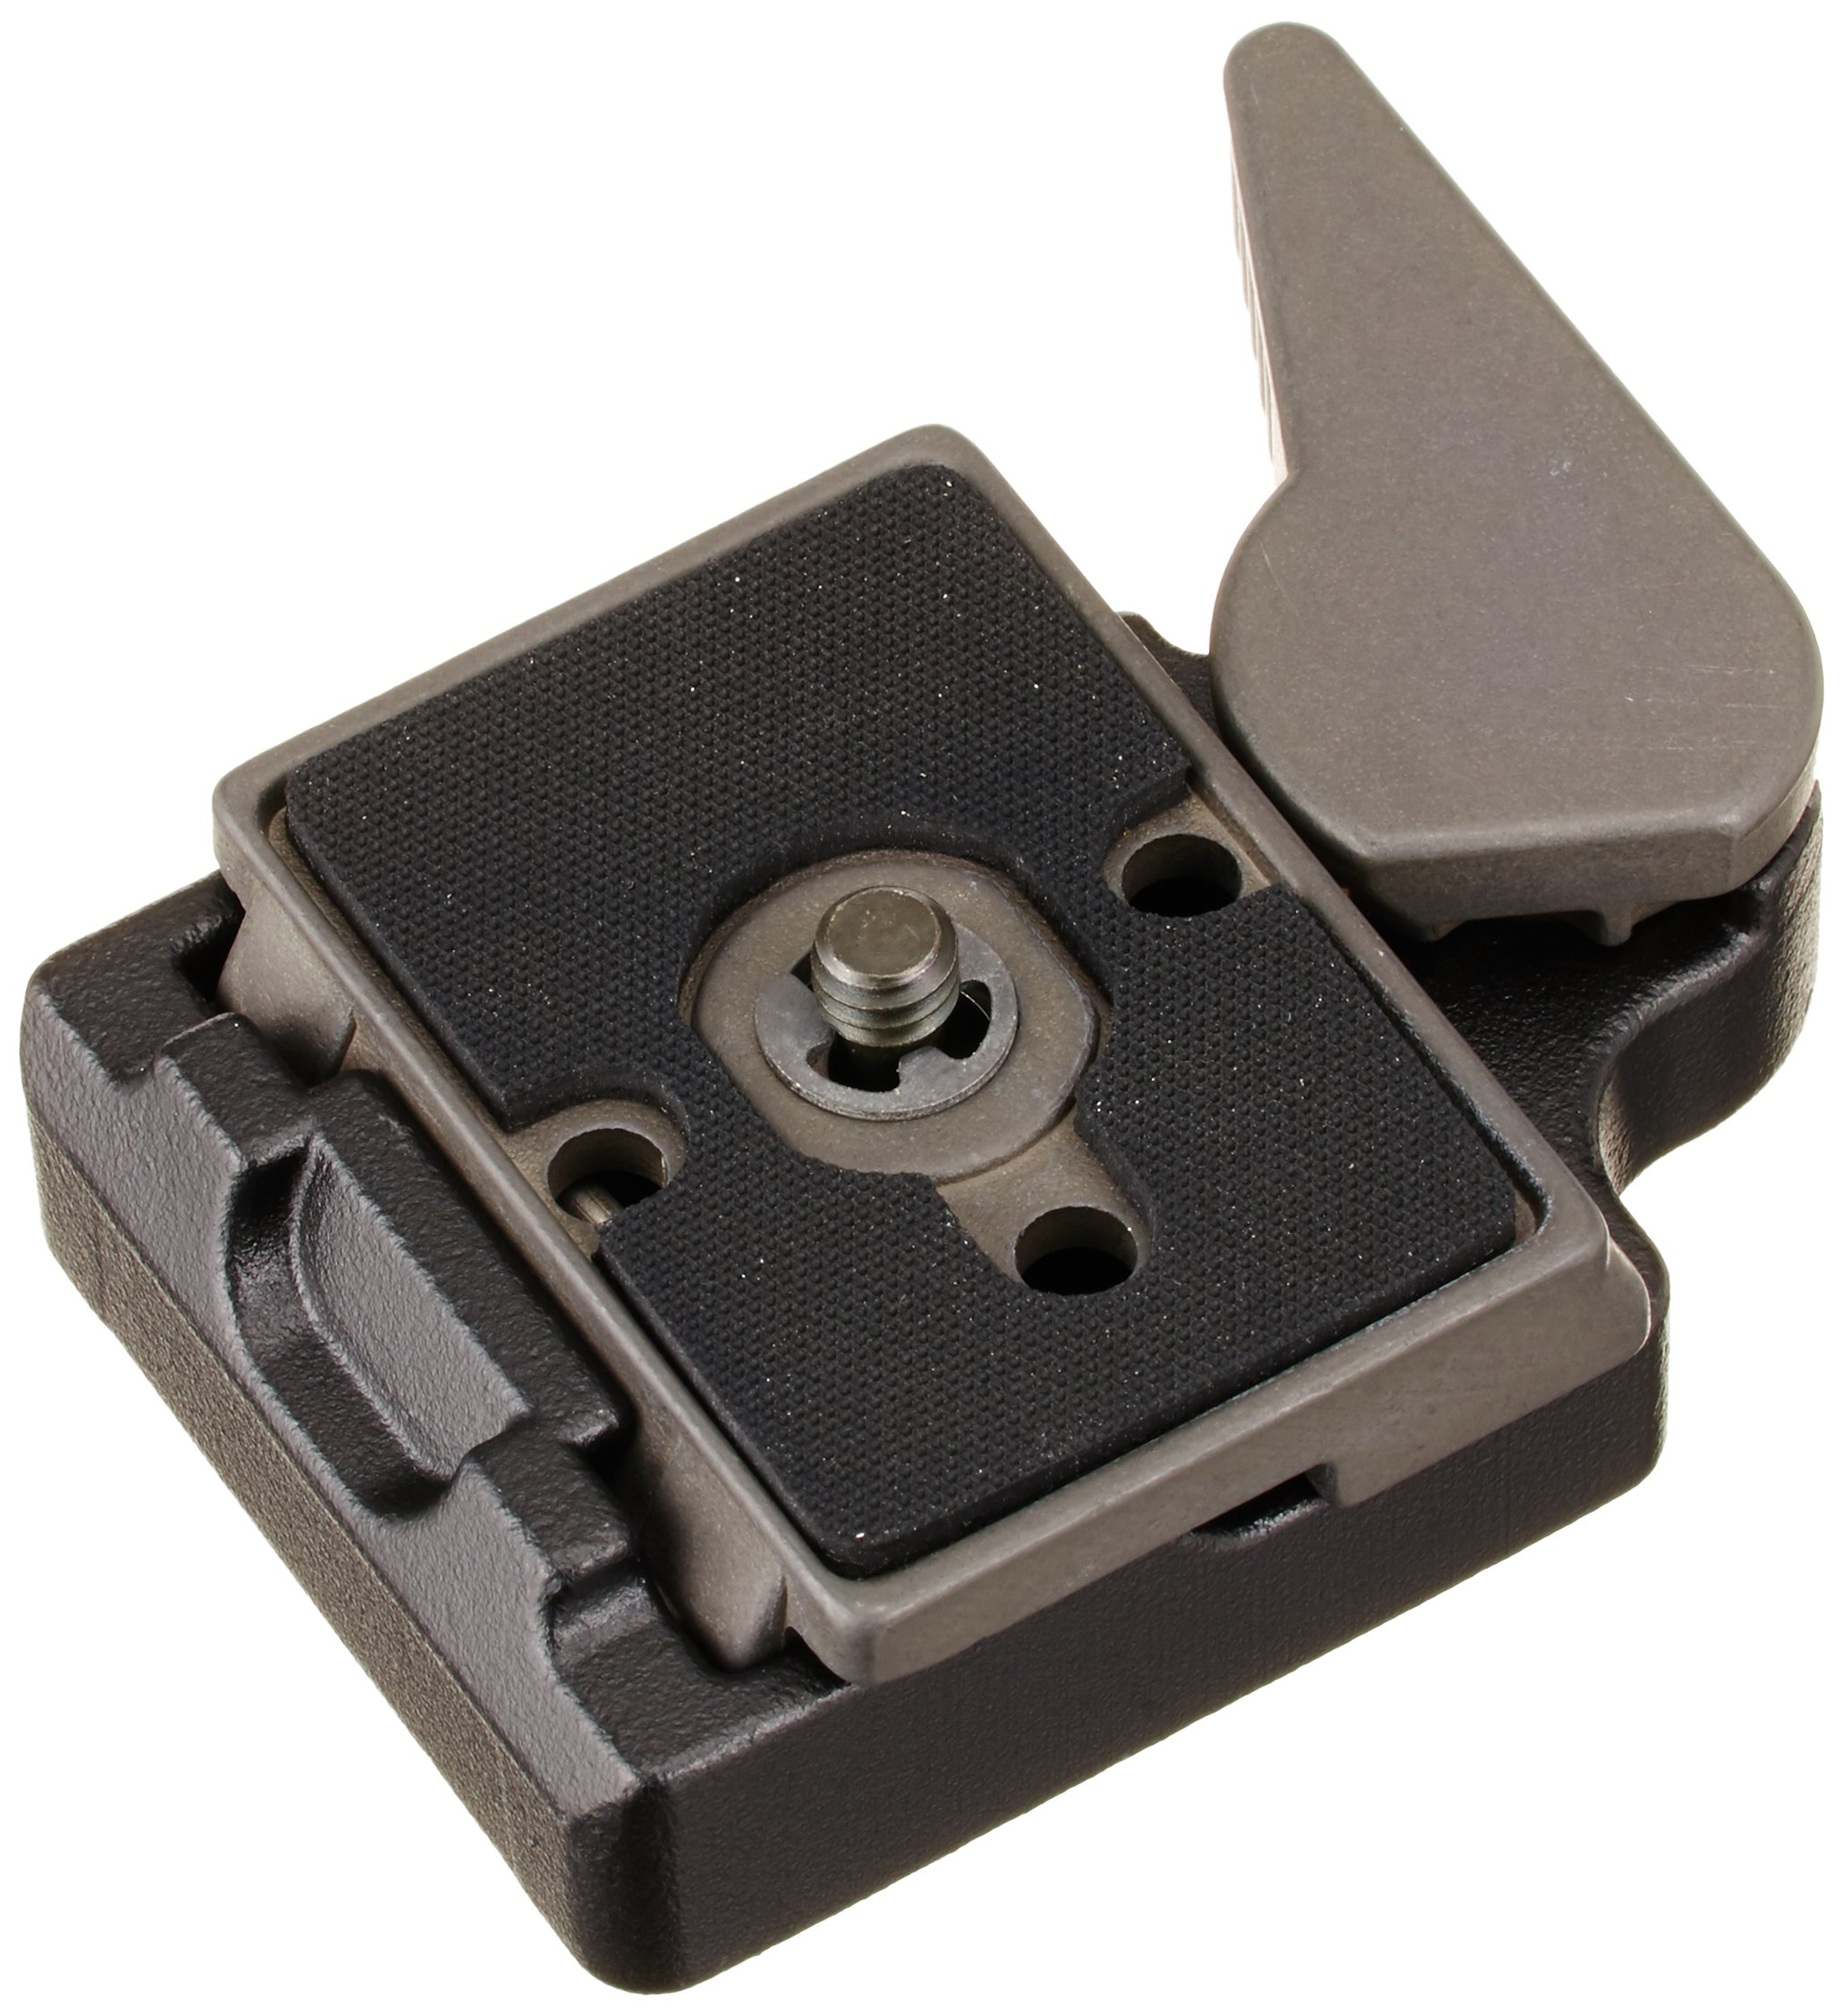 Manfrotto 323 RC2 Rapid Connect Adapter with 200PL-14 Quick Release Plate - Replaces 3299-Black by Manfrotto